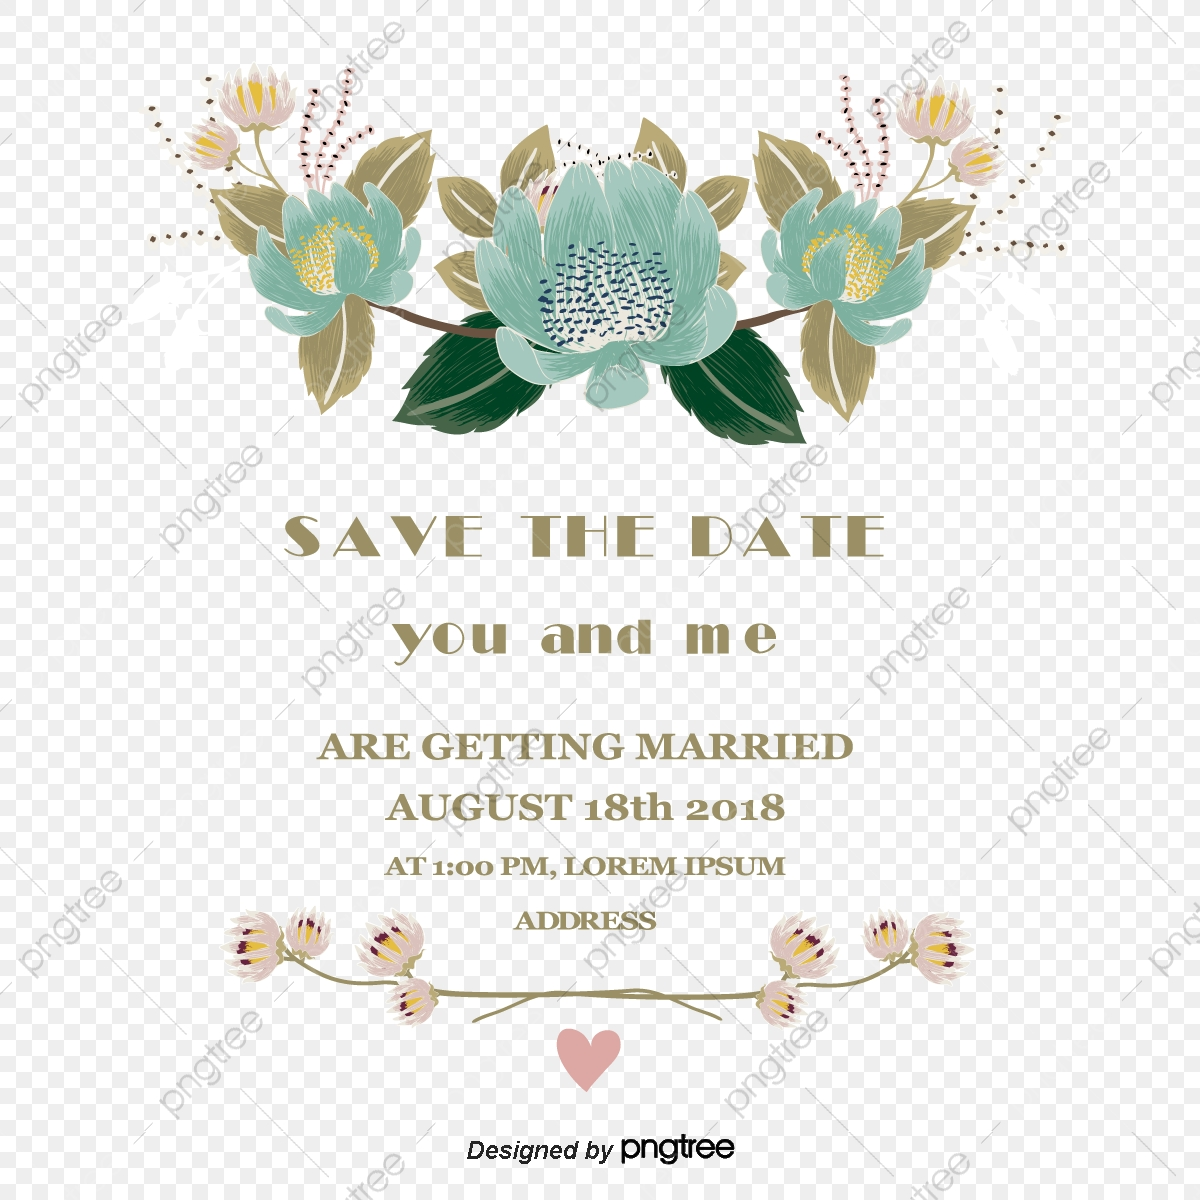 Art Invitation Letter Vector Material Wedding Invitation